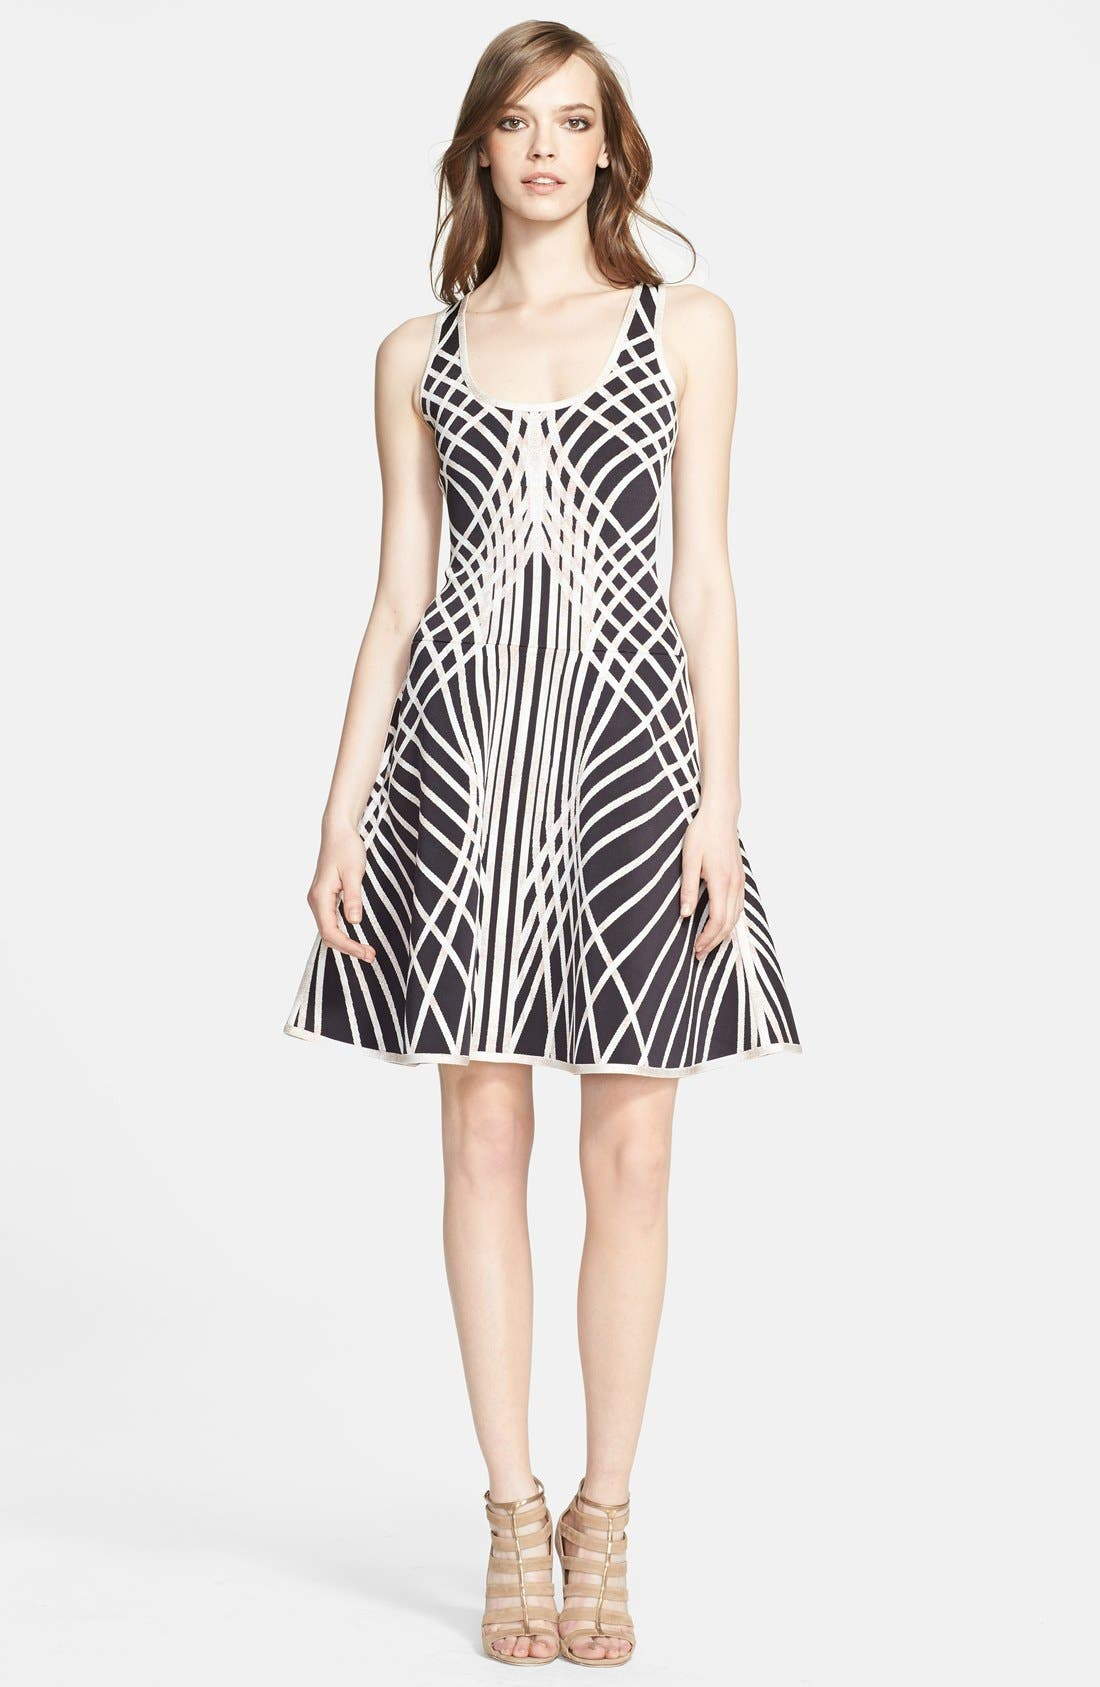 Alternate Image 1 Selected - Herve Leger Contrast Graphic Pattern Fit & Flare Dress